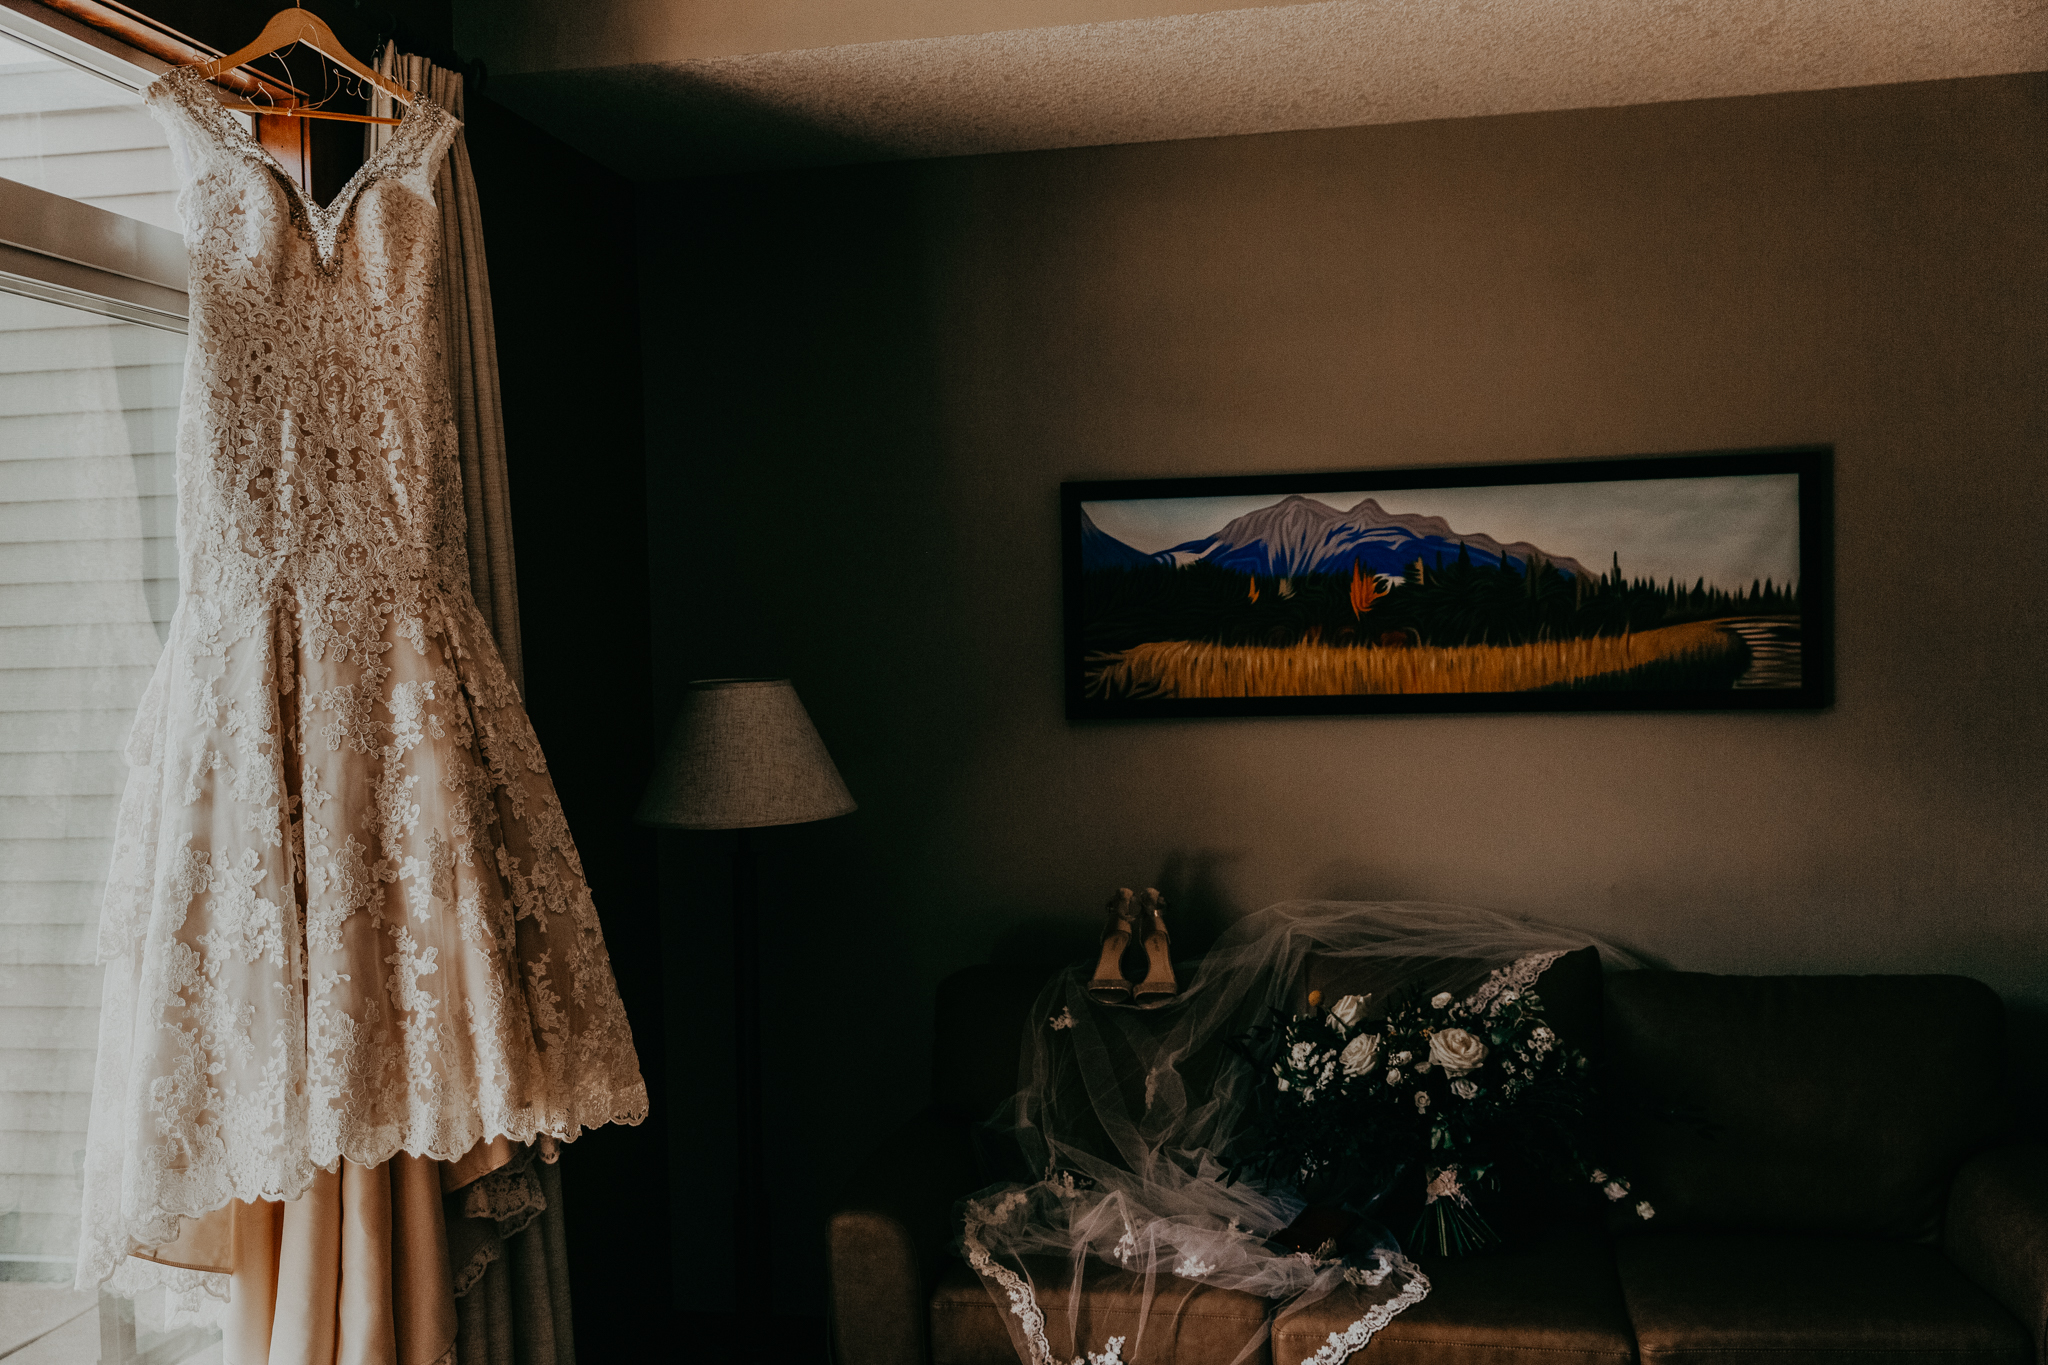 Bride's wedding dress hanging from doorframe with veil and flowers